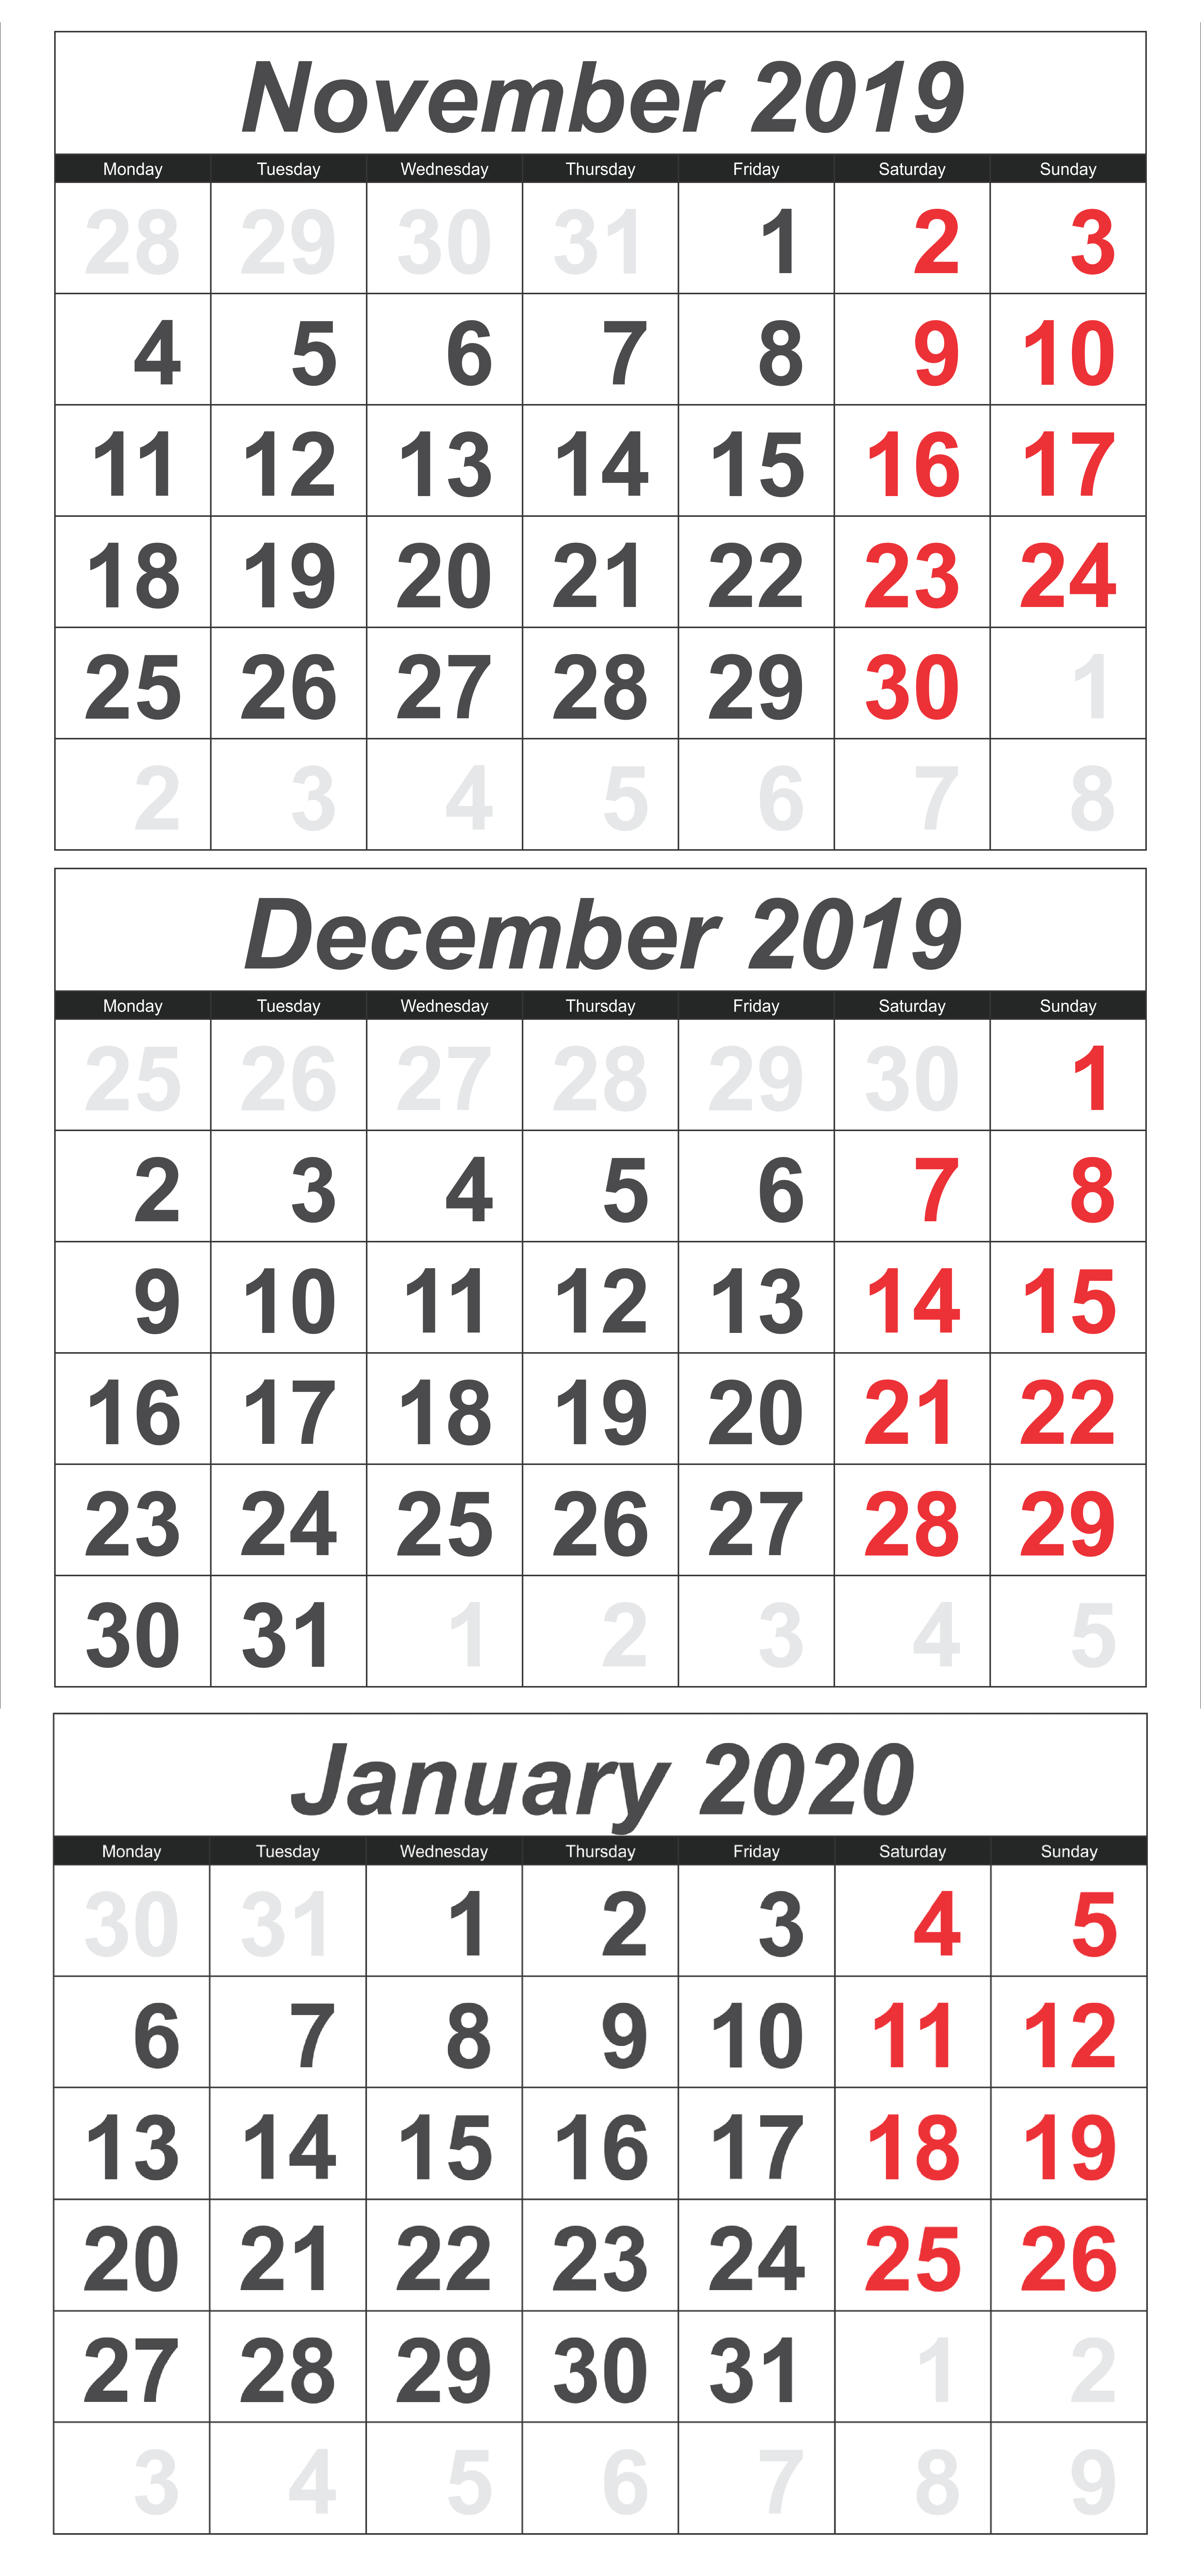 November 2019 To January 2020 Calendar Template  2019 throughout Two Month Calendar November December 2020